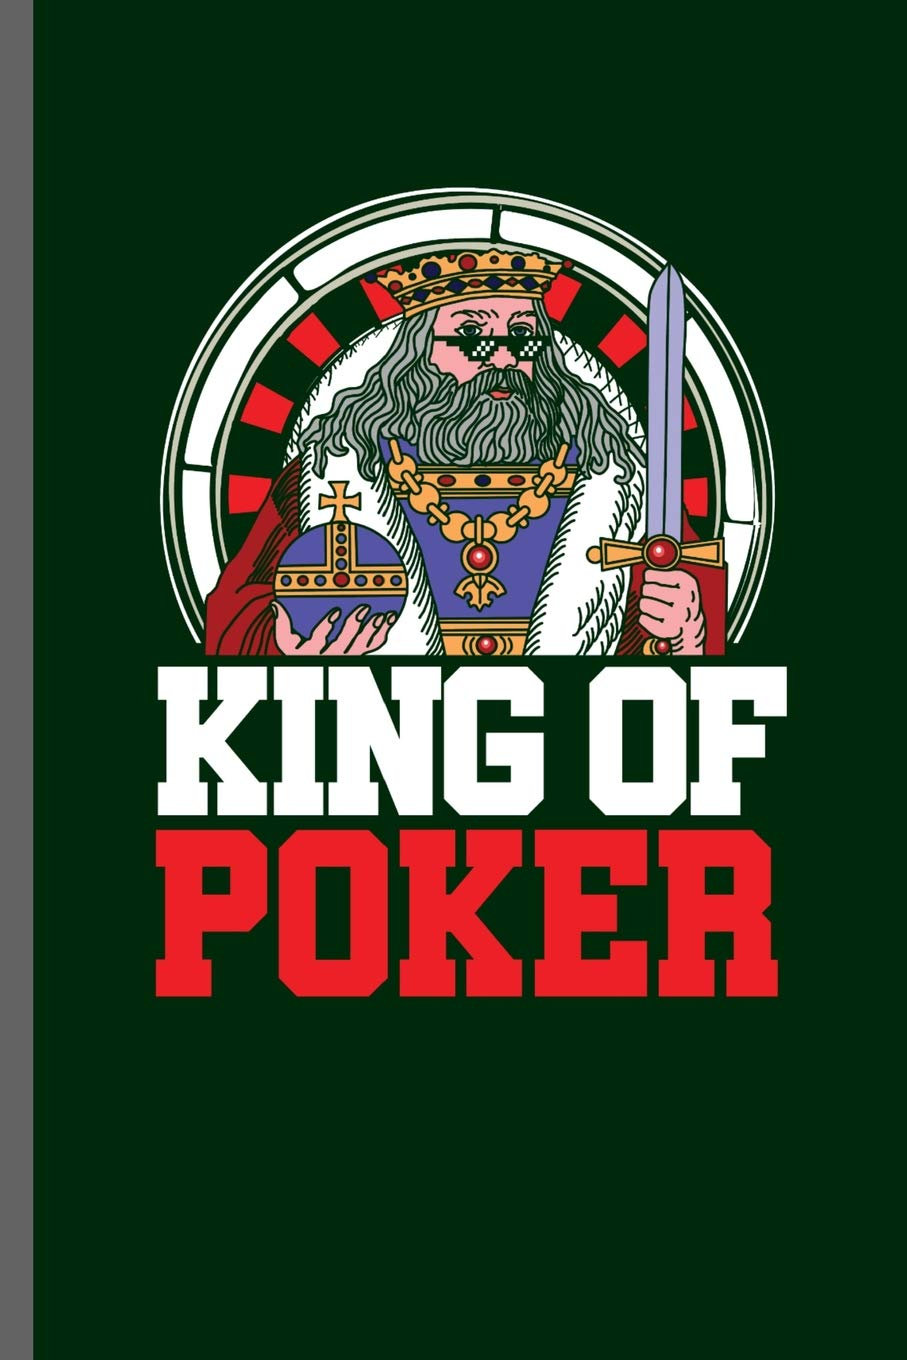 King Of Poker Card Playing Poker Spades Pokerchips Dice Games Raise Card Games Strategy Penochle Gamble Lovers Notebooks Gift 6 X9 Dot Grid Notebook To Write In Travis Gino 9781072280361 Amazon Com Books